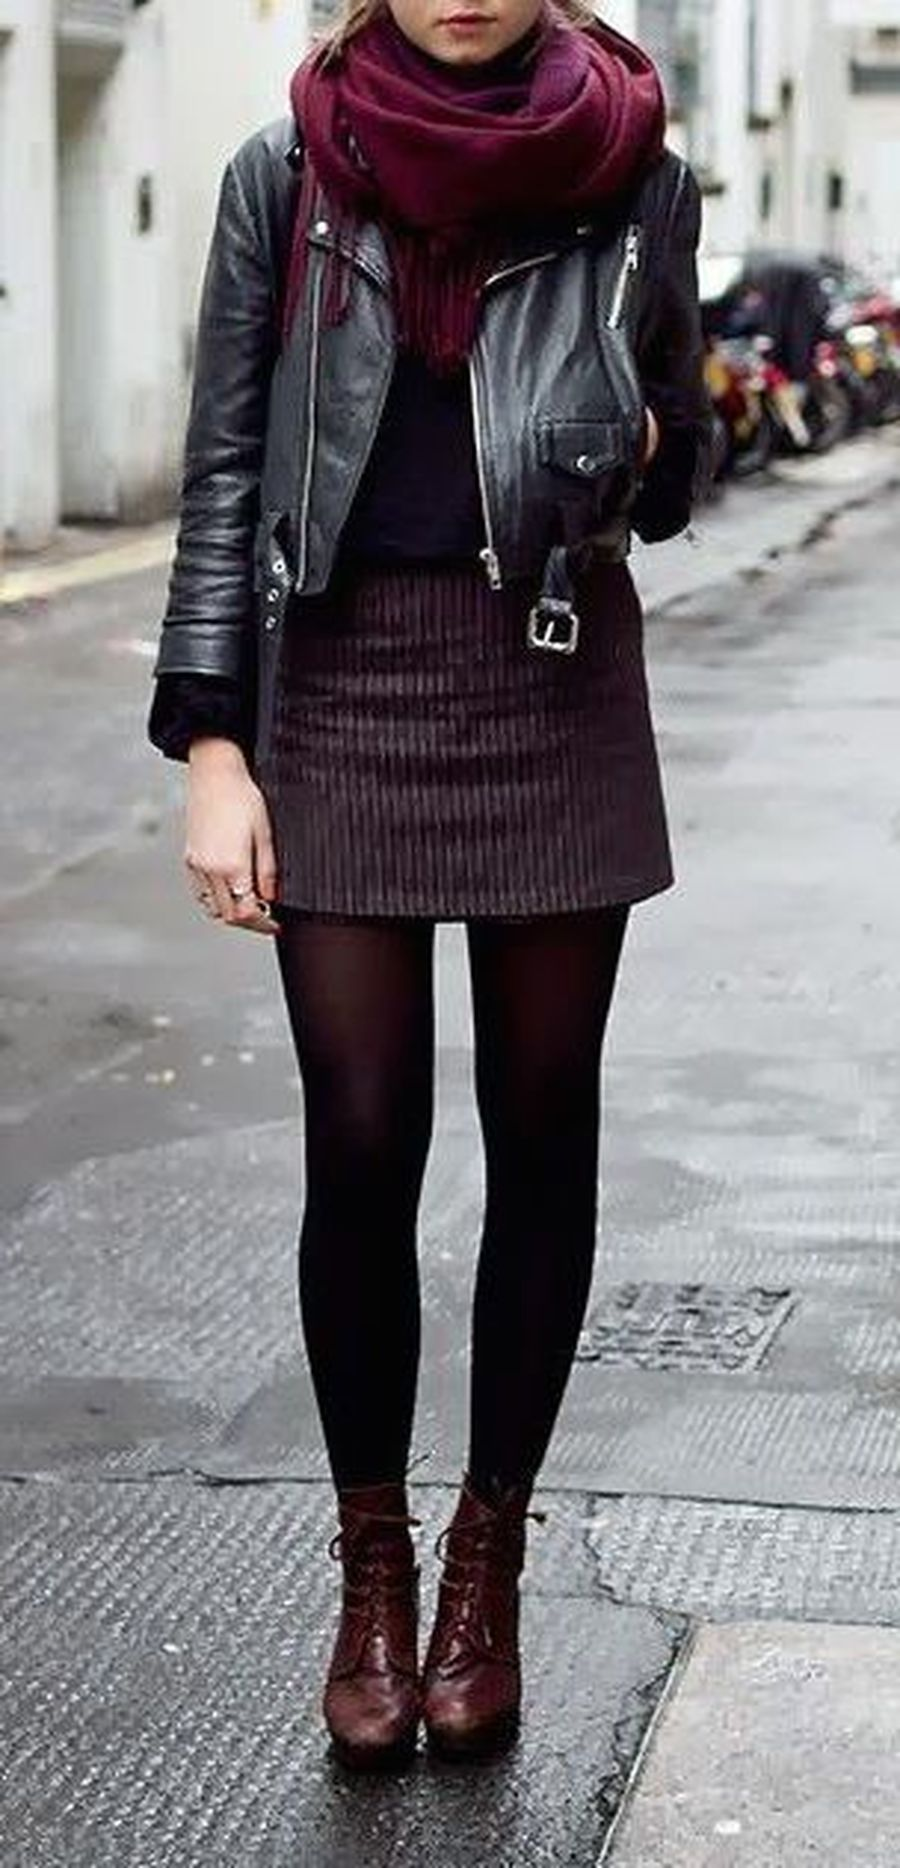 Inspiring skirt and boots combinations for fall and winter outfits 24